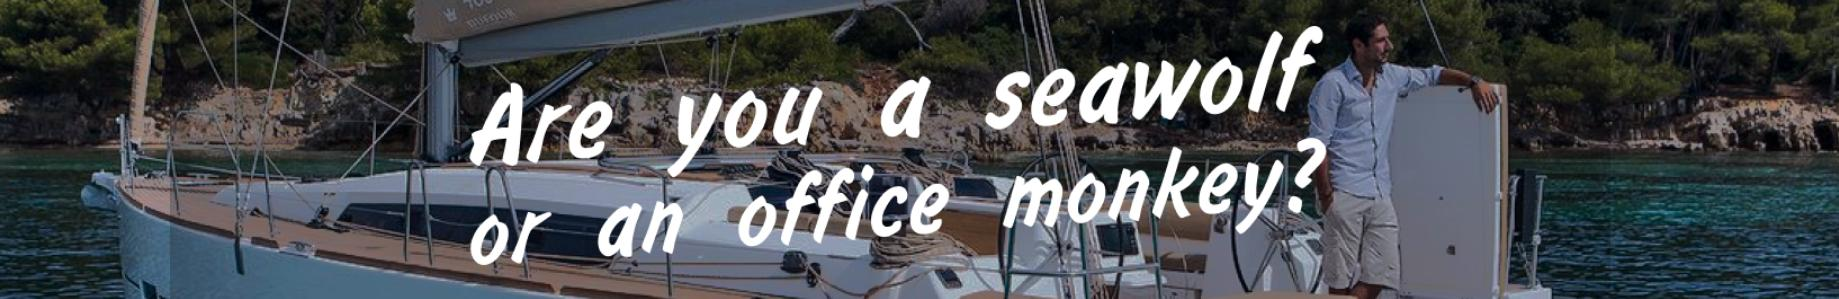 Are you a seawolf or an office monkey?